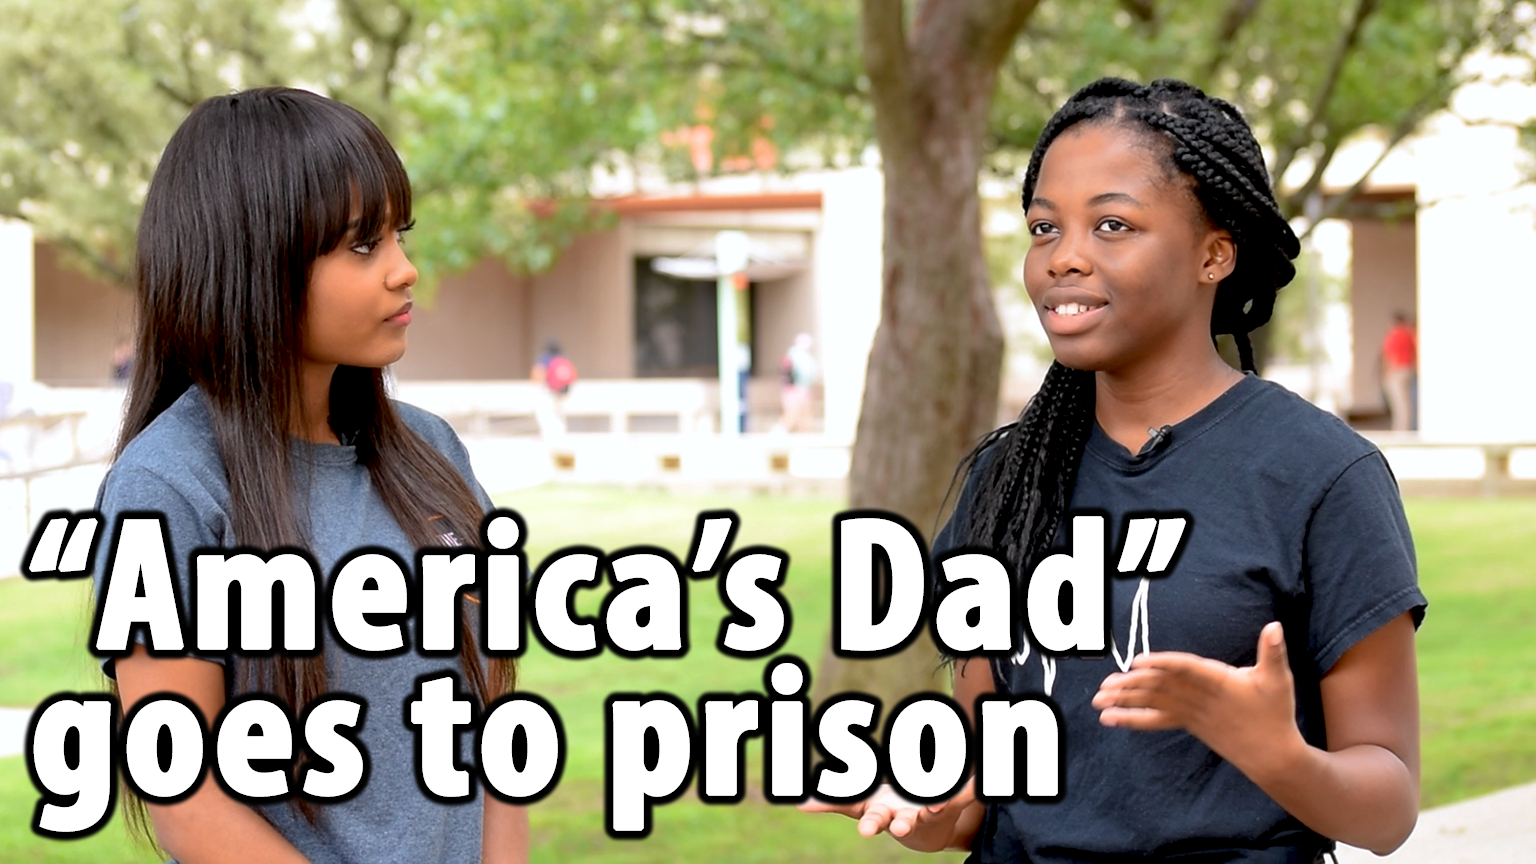 """America's Dad"" goes to prison"